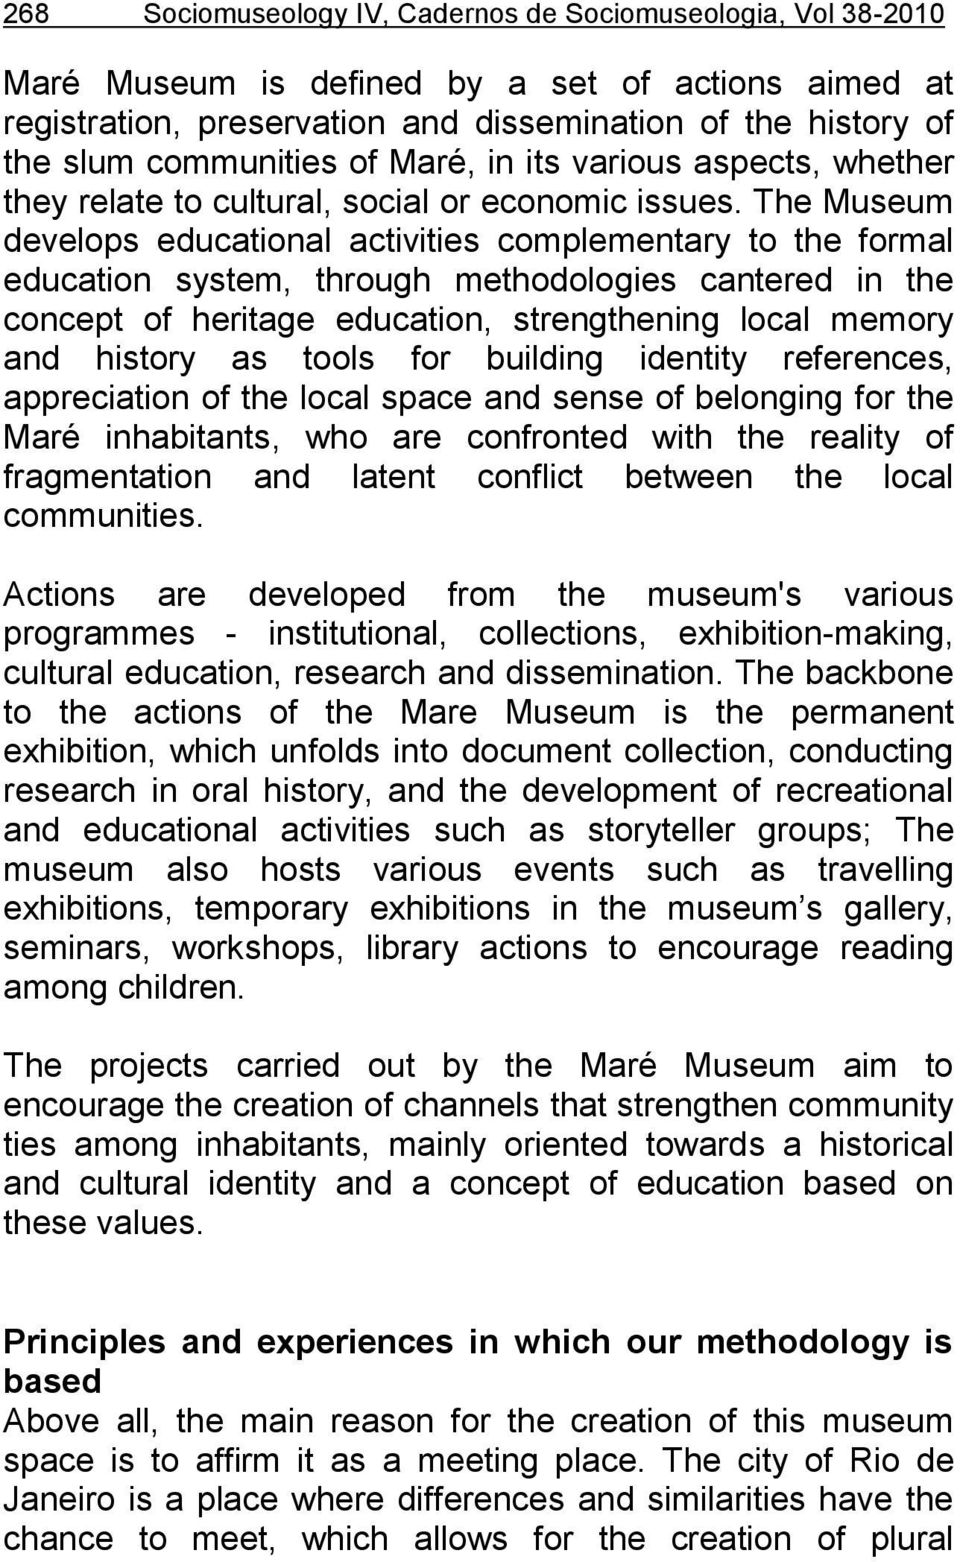 The Museum develops educational activities complementary to the formal education system, through methodologies cantered in the concept of heritage education, strengthening local memory and history as